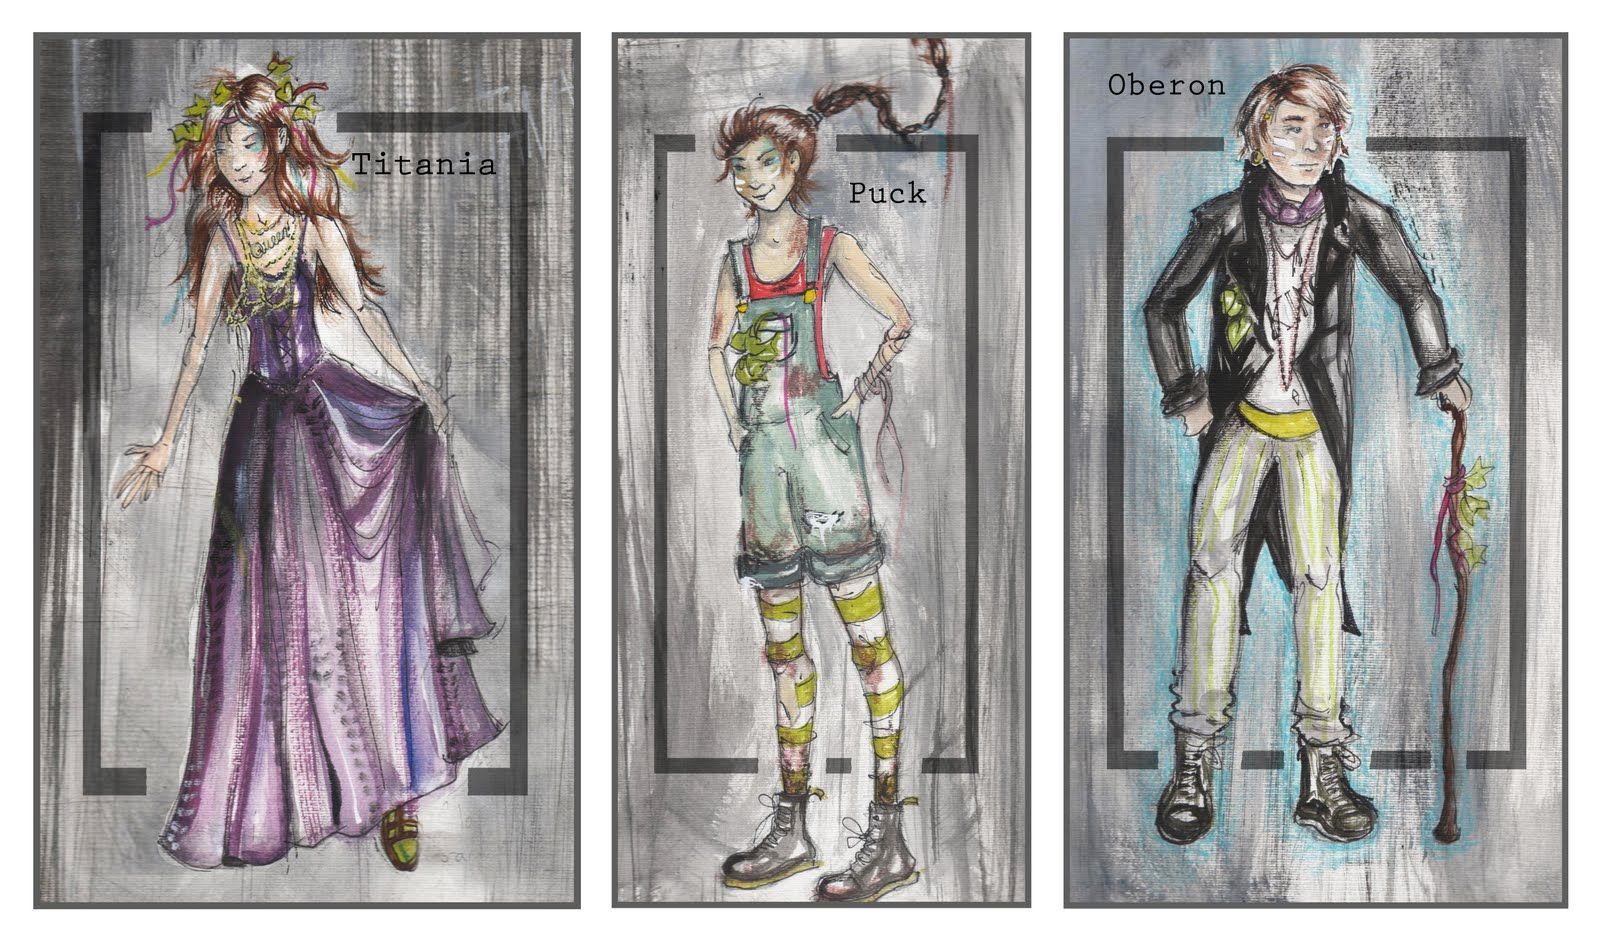 Puck Idea Midsummer Nights Dream Costume Design Midsummer